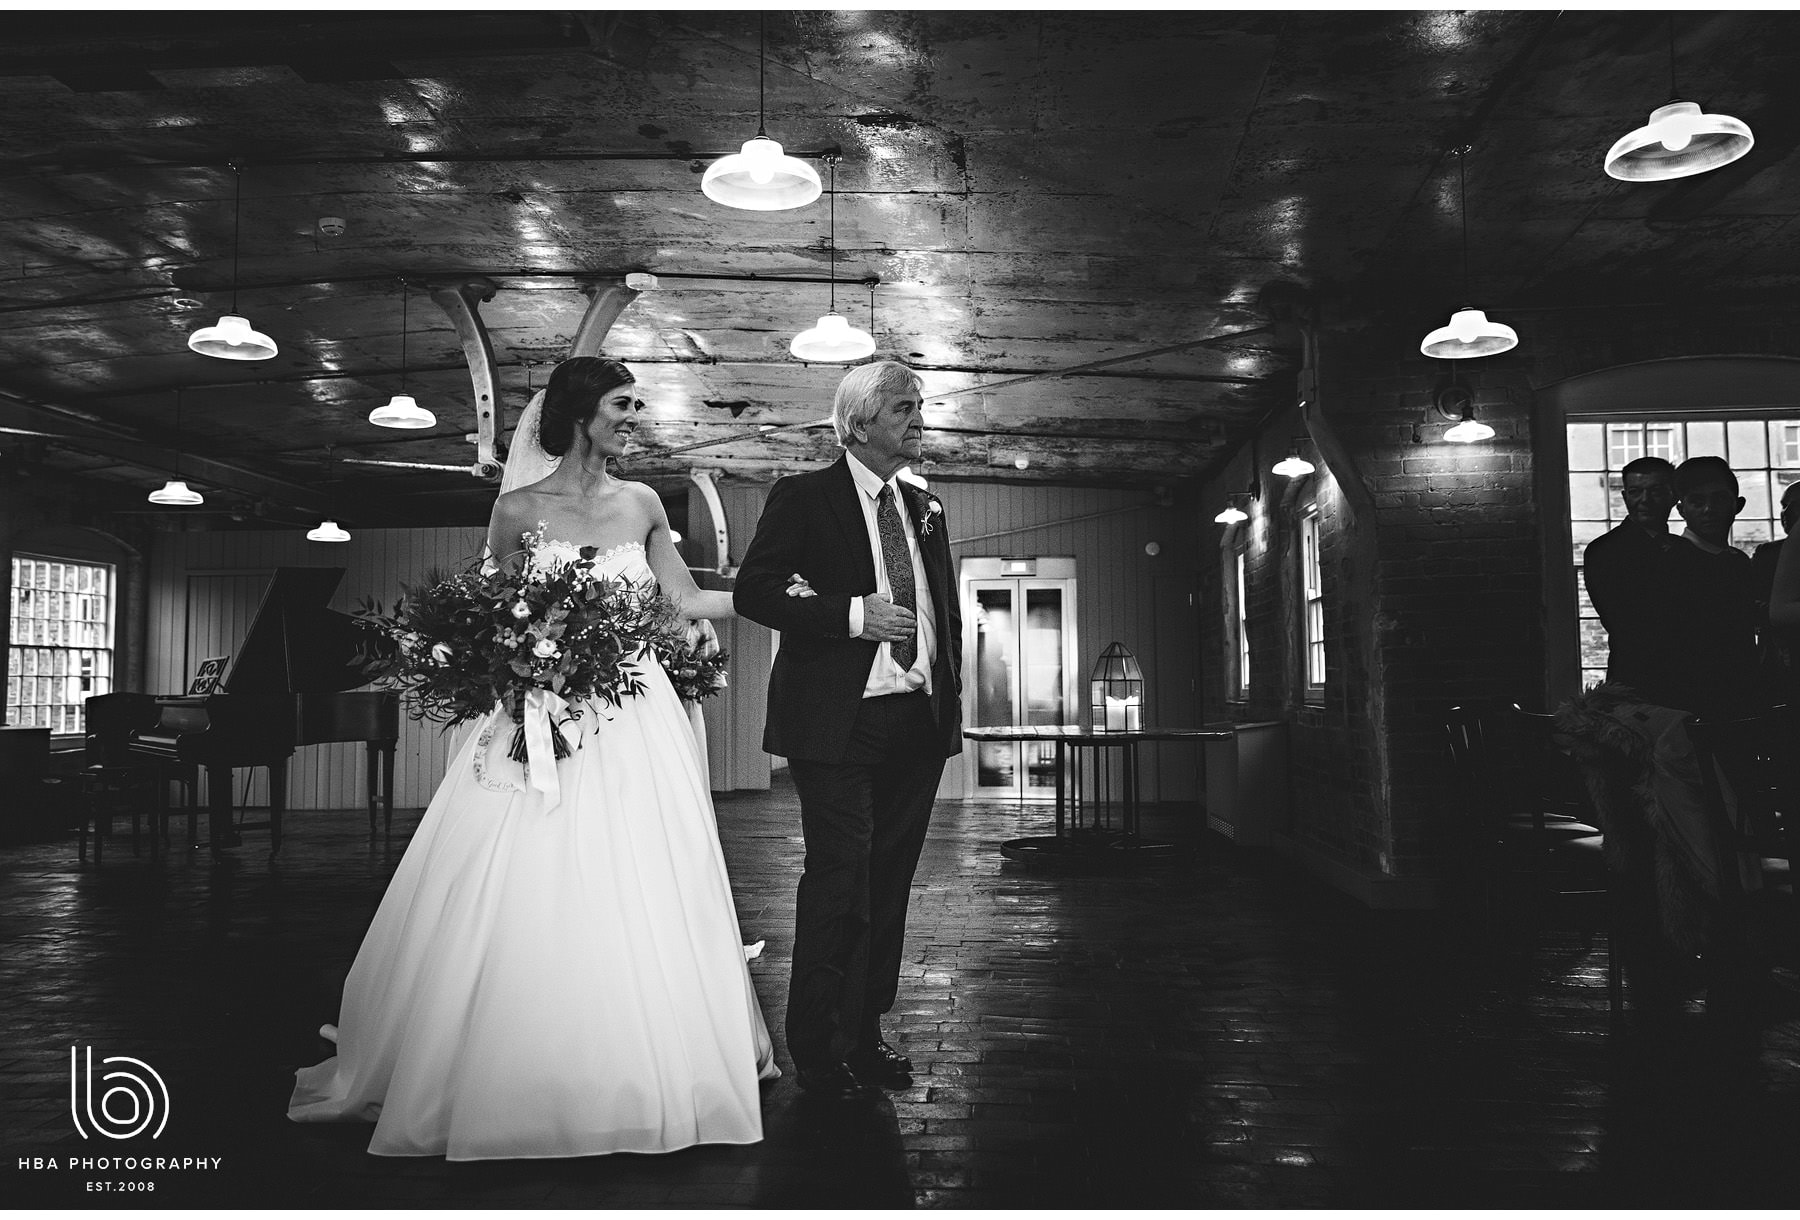 the bride and her dad walking into the ceremony